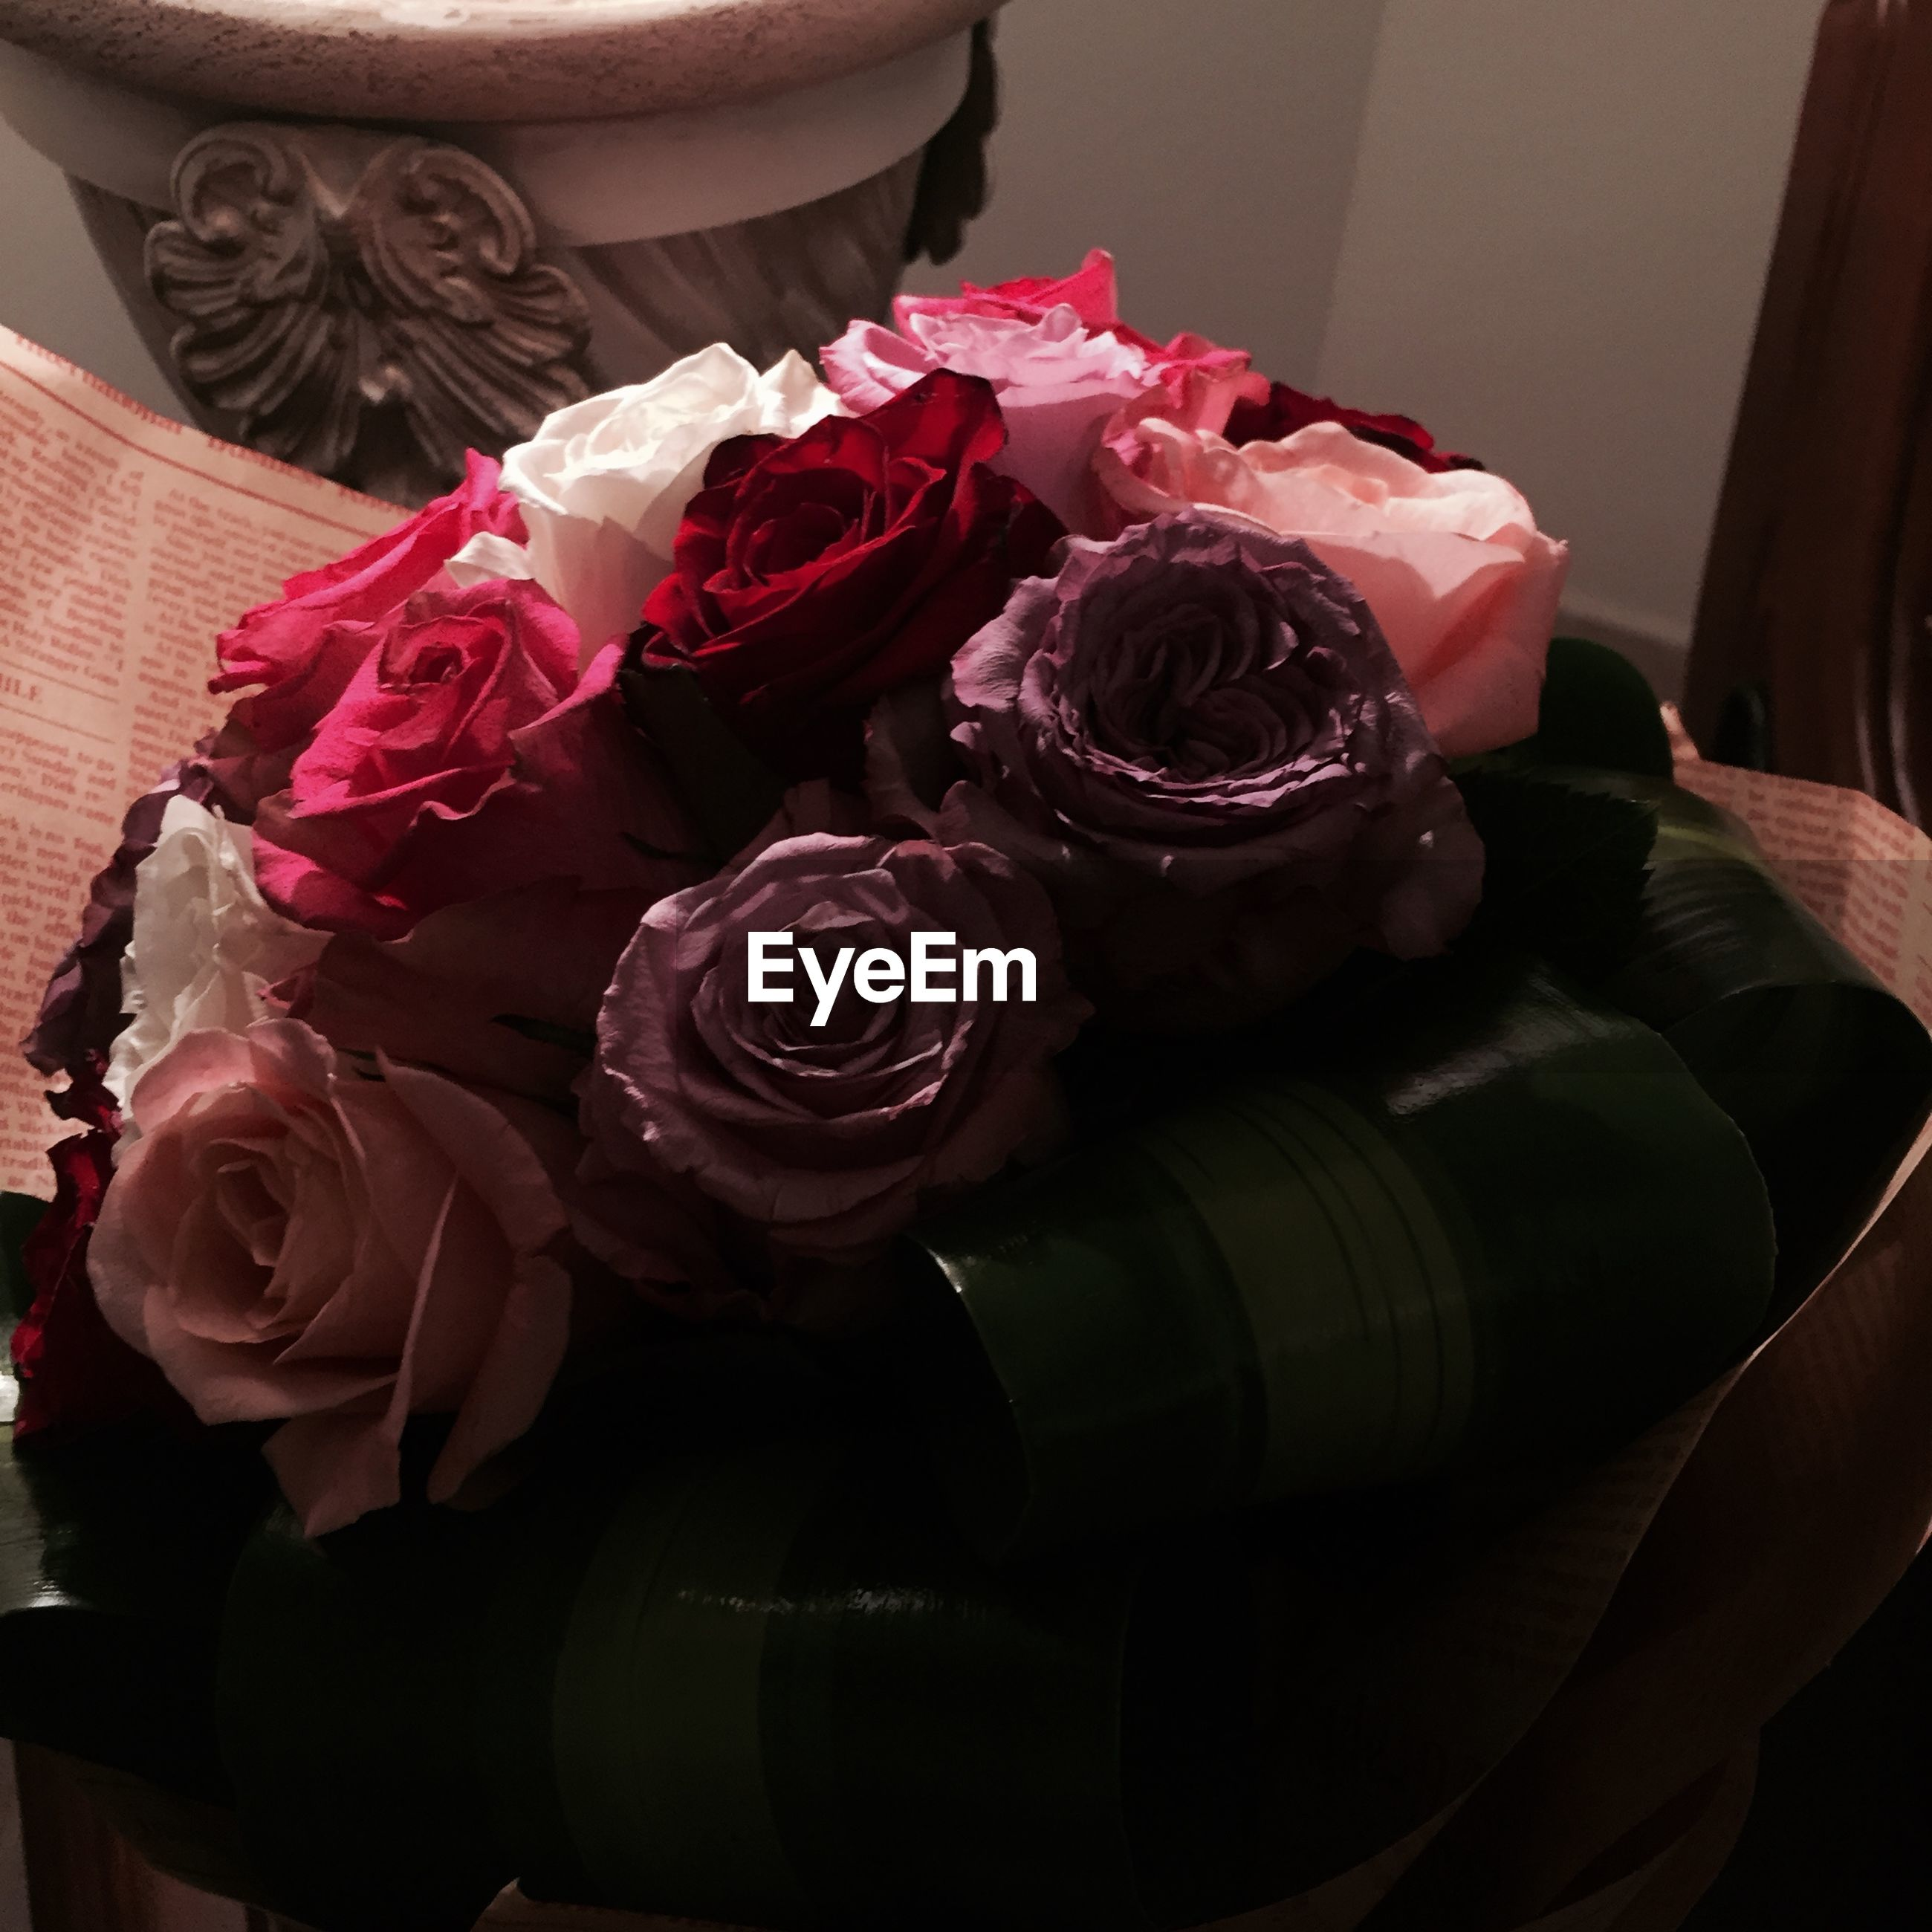 indoors, flower, close-up, still life, petal, pink color, home interior, rose - flower, high angle view, no people, table, freshness, variation, vase, flower head, decoration, bouquet, day, fragility, red